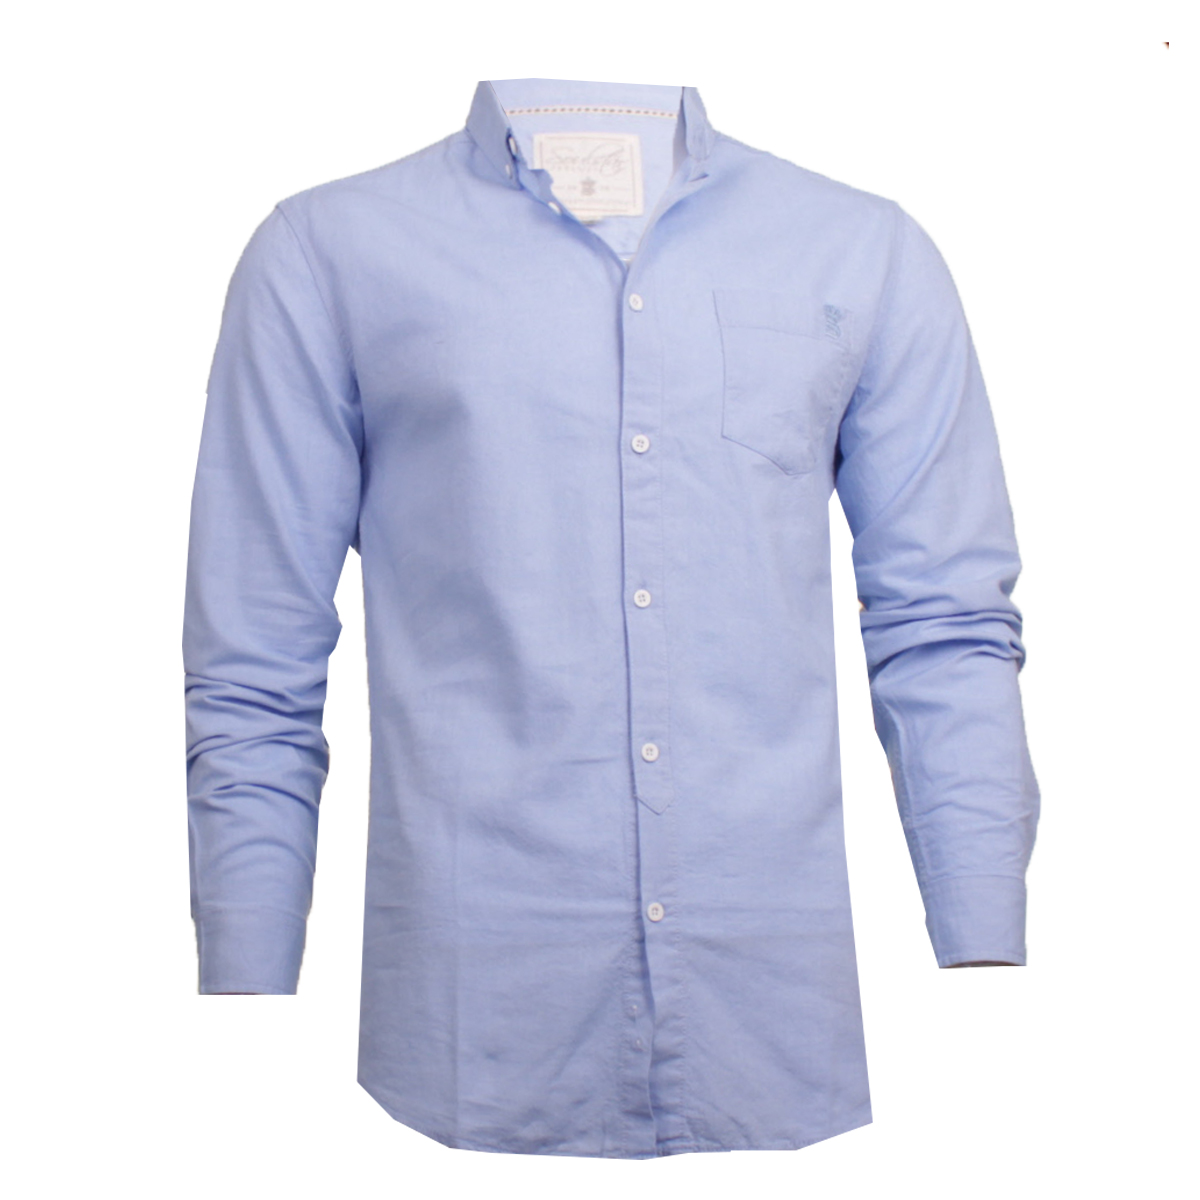 f42e8d86d5e Sentinel Mens Soul Star Long Sleeve Oxford Button Down Collar Summer Casual  Shirt Pastel